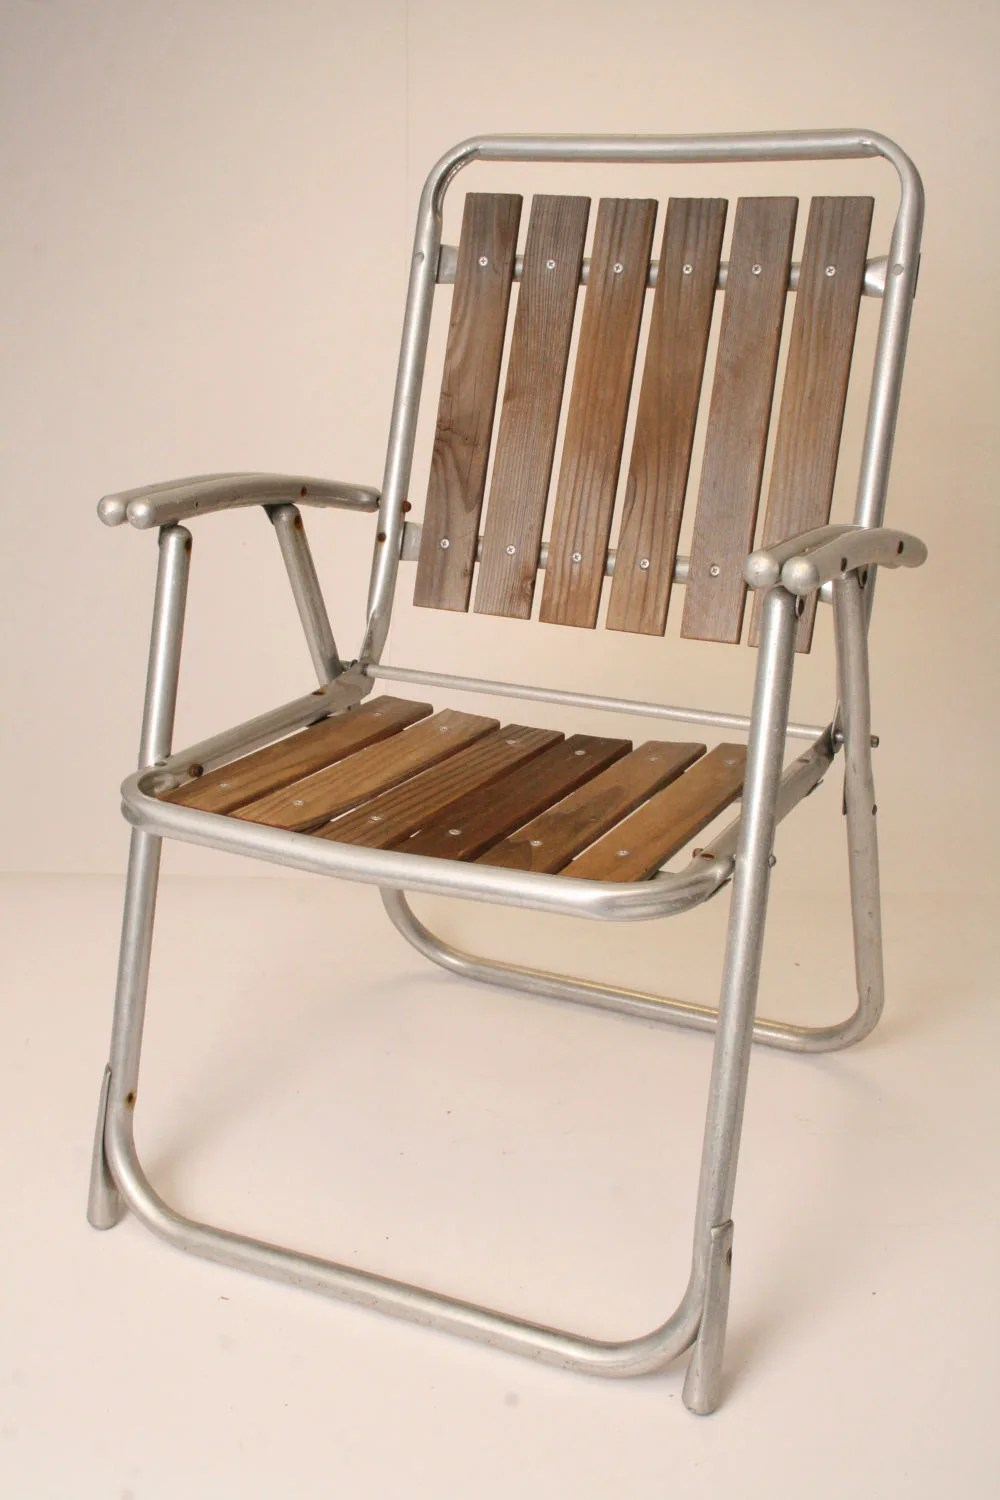 lightweight lawn chairs weave dining vintage aluminum folding chair redwood patio metal red